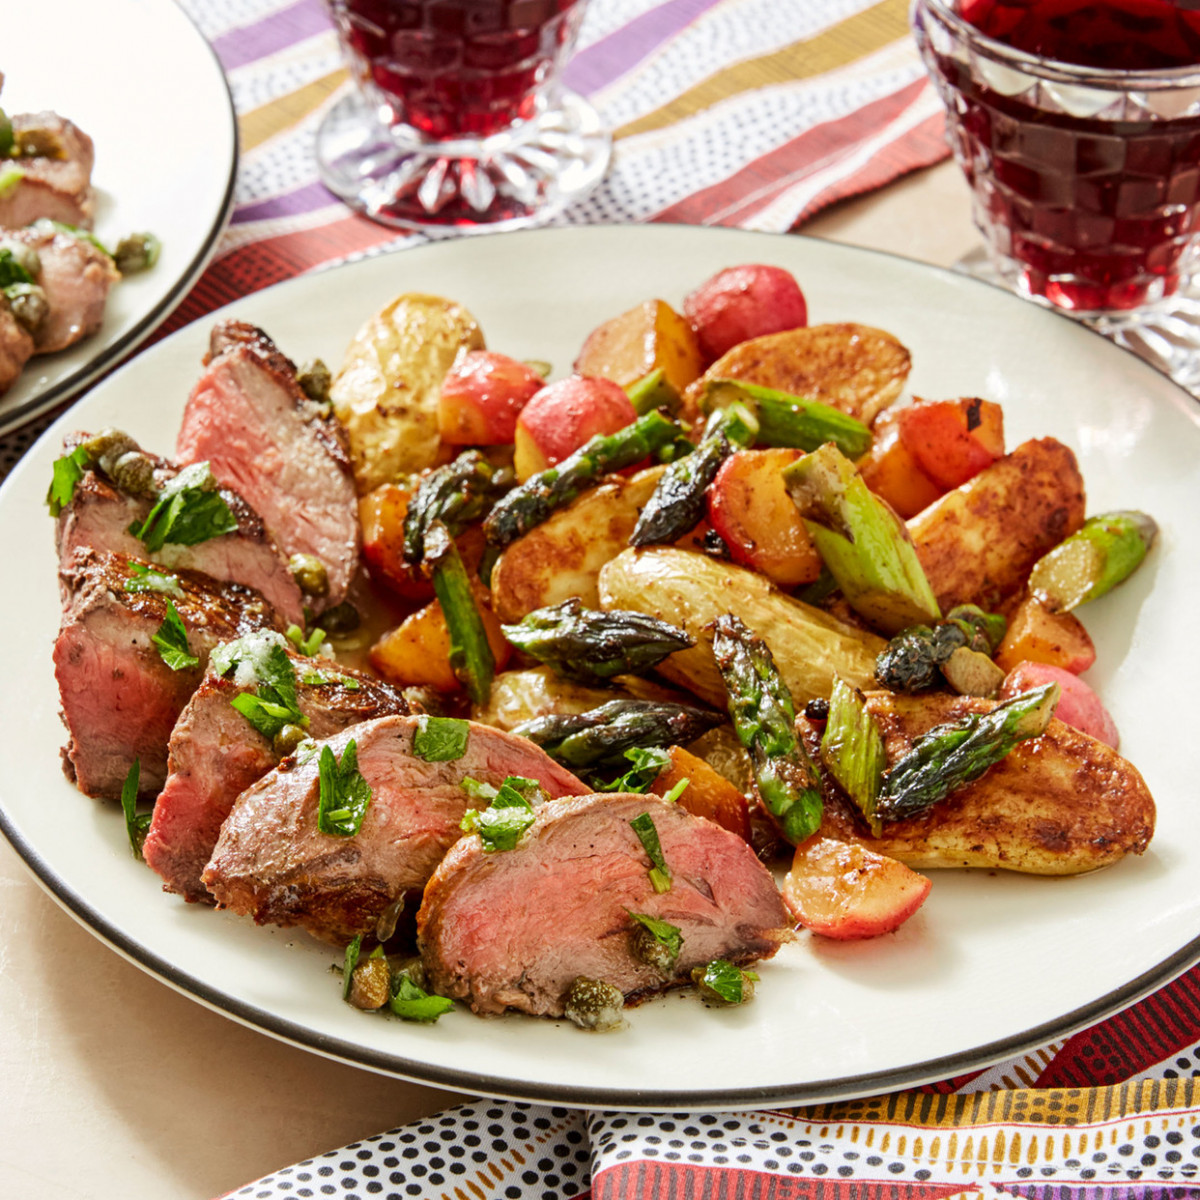 Seared Steaks & Salsa Verde with Fingerling Potatoes, Asparagus and Radishes